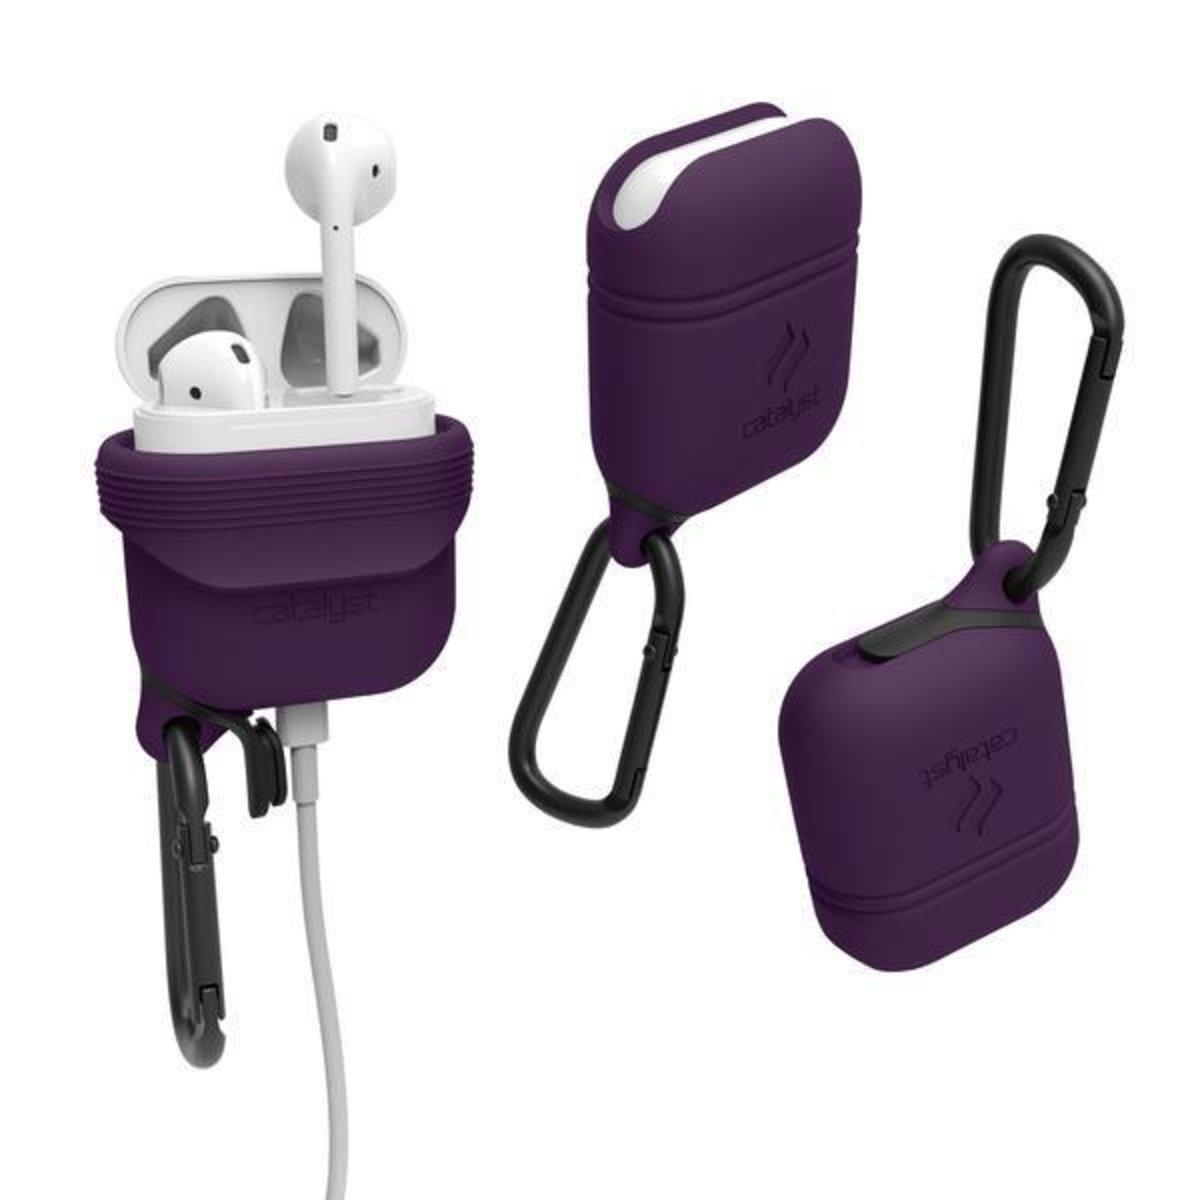 WATERPROOF Drop proof IP67 CASE with HOOK For Airpods Deep Plum